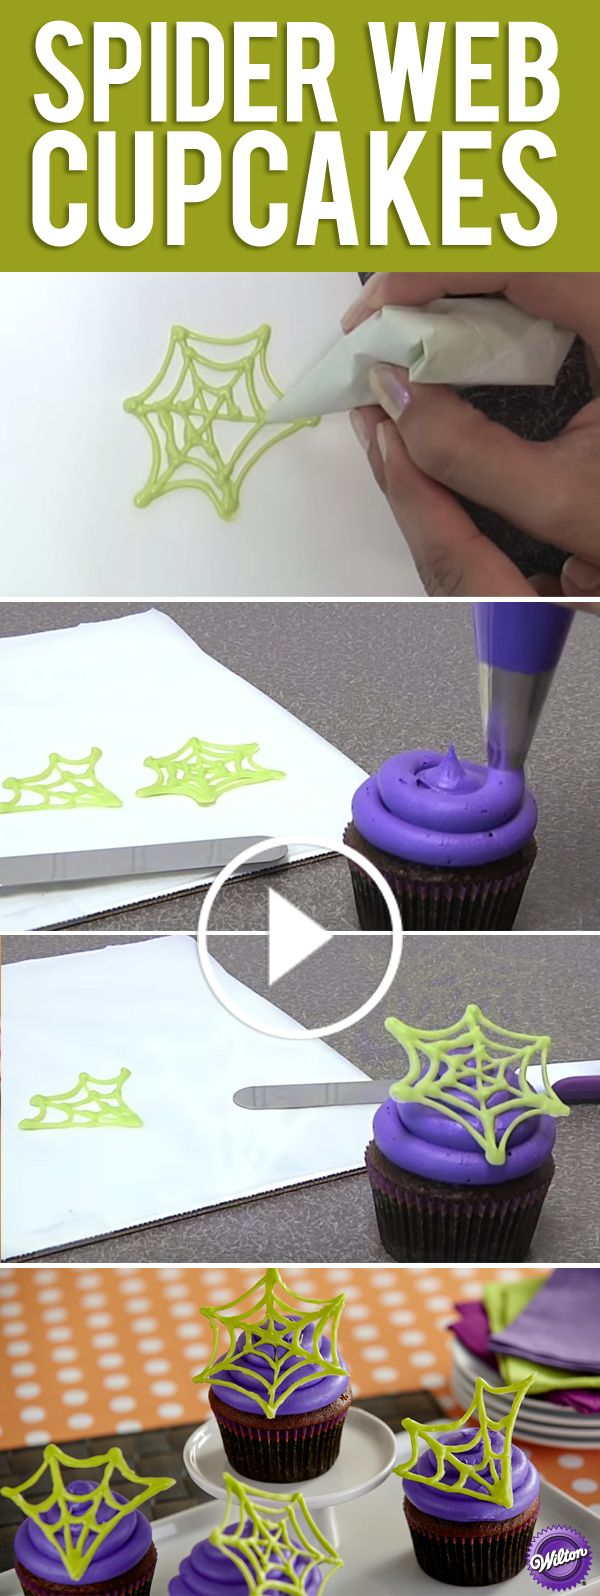 Make candy spider web cupcake decorations for Halloween